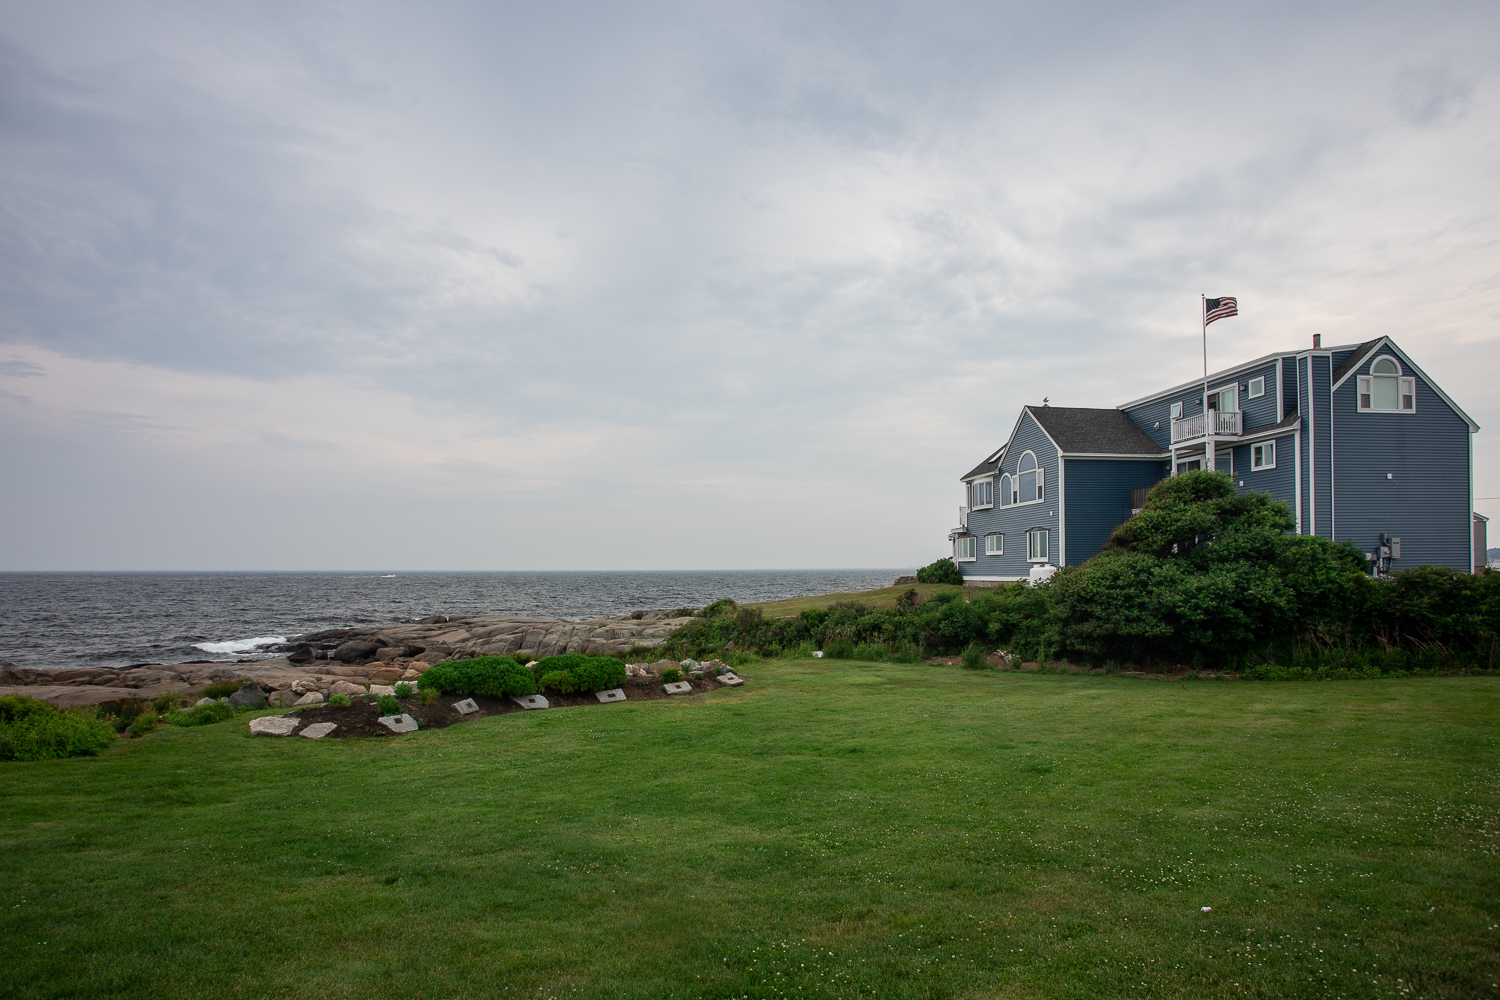 Views from Sohier Park (Nubble Point) in York, Maine.